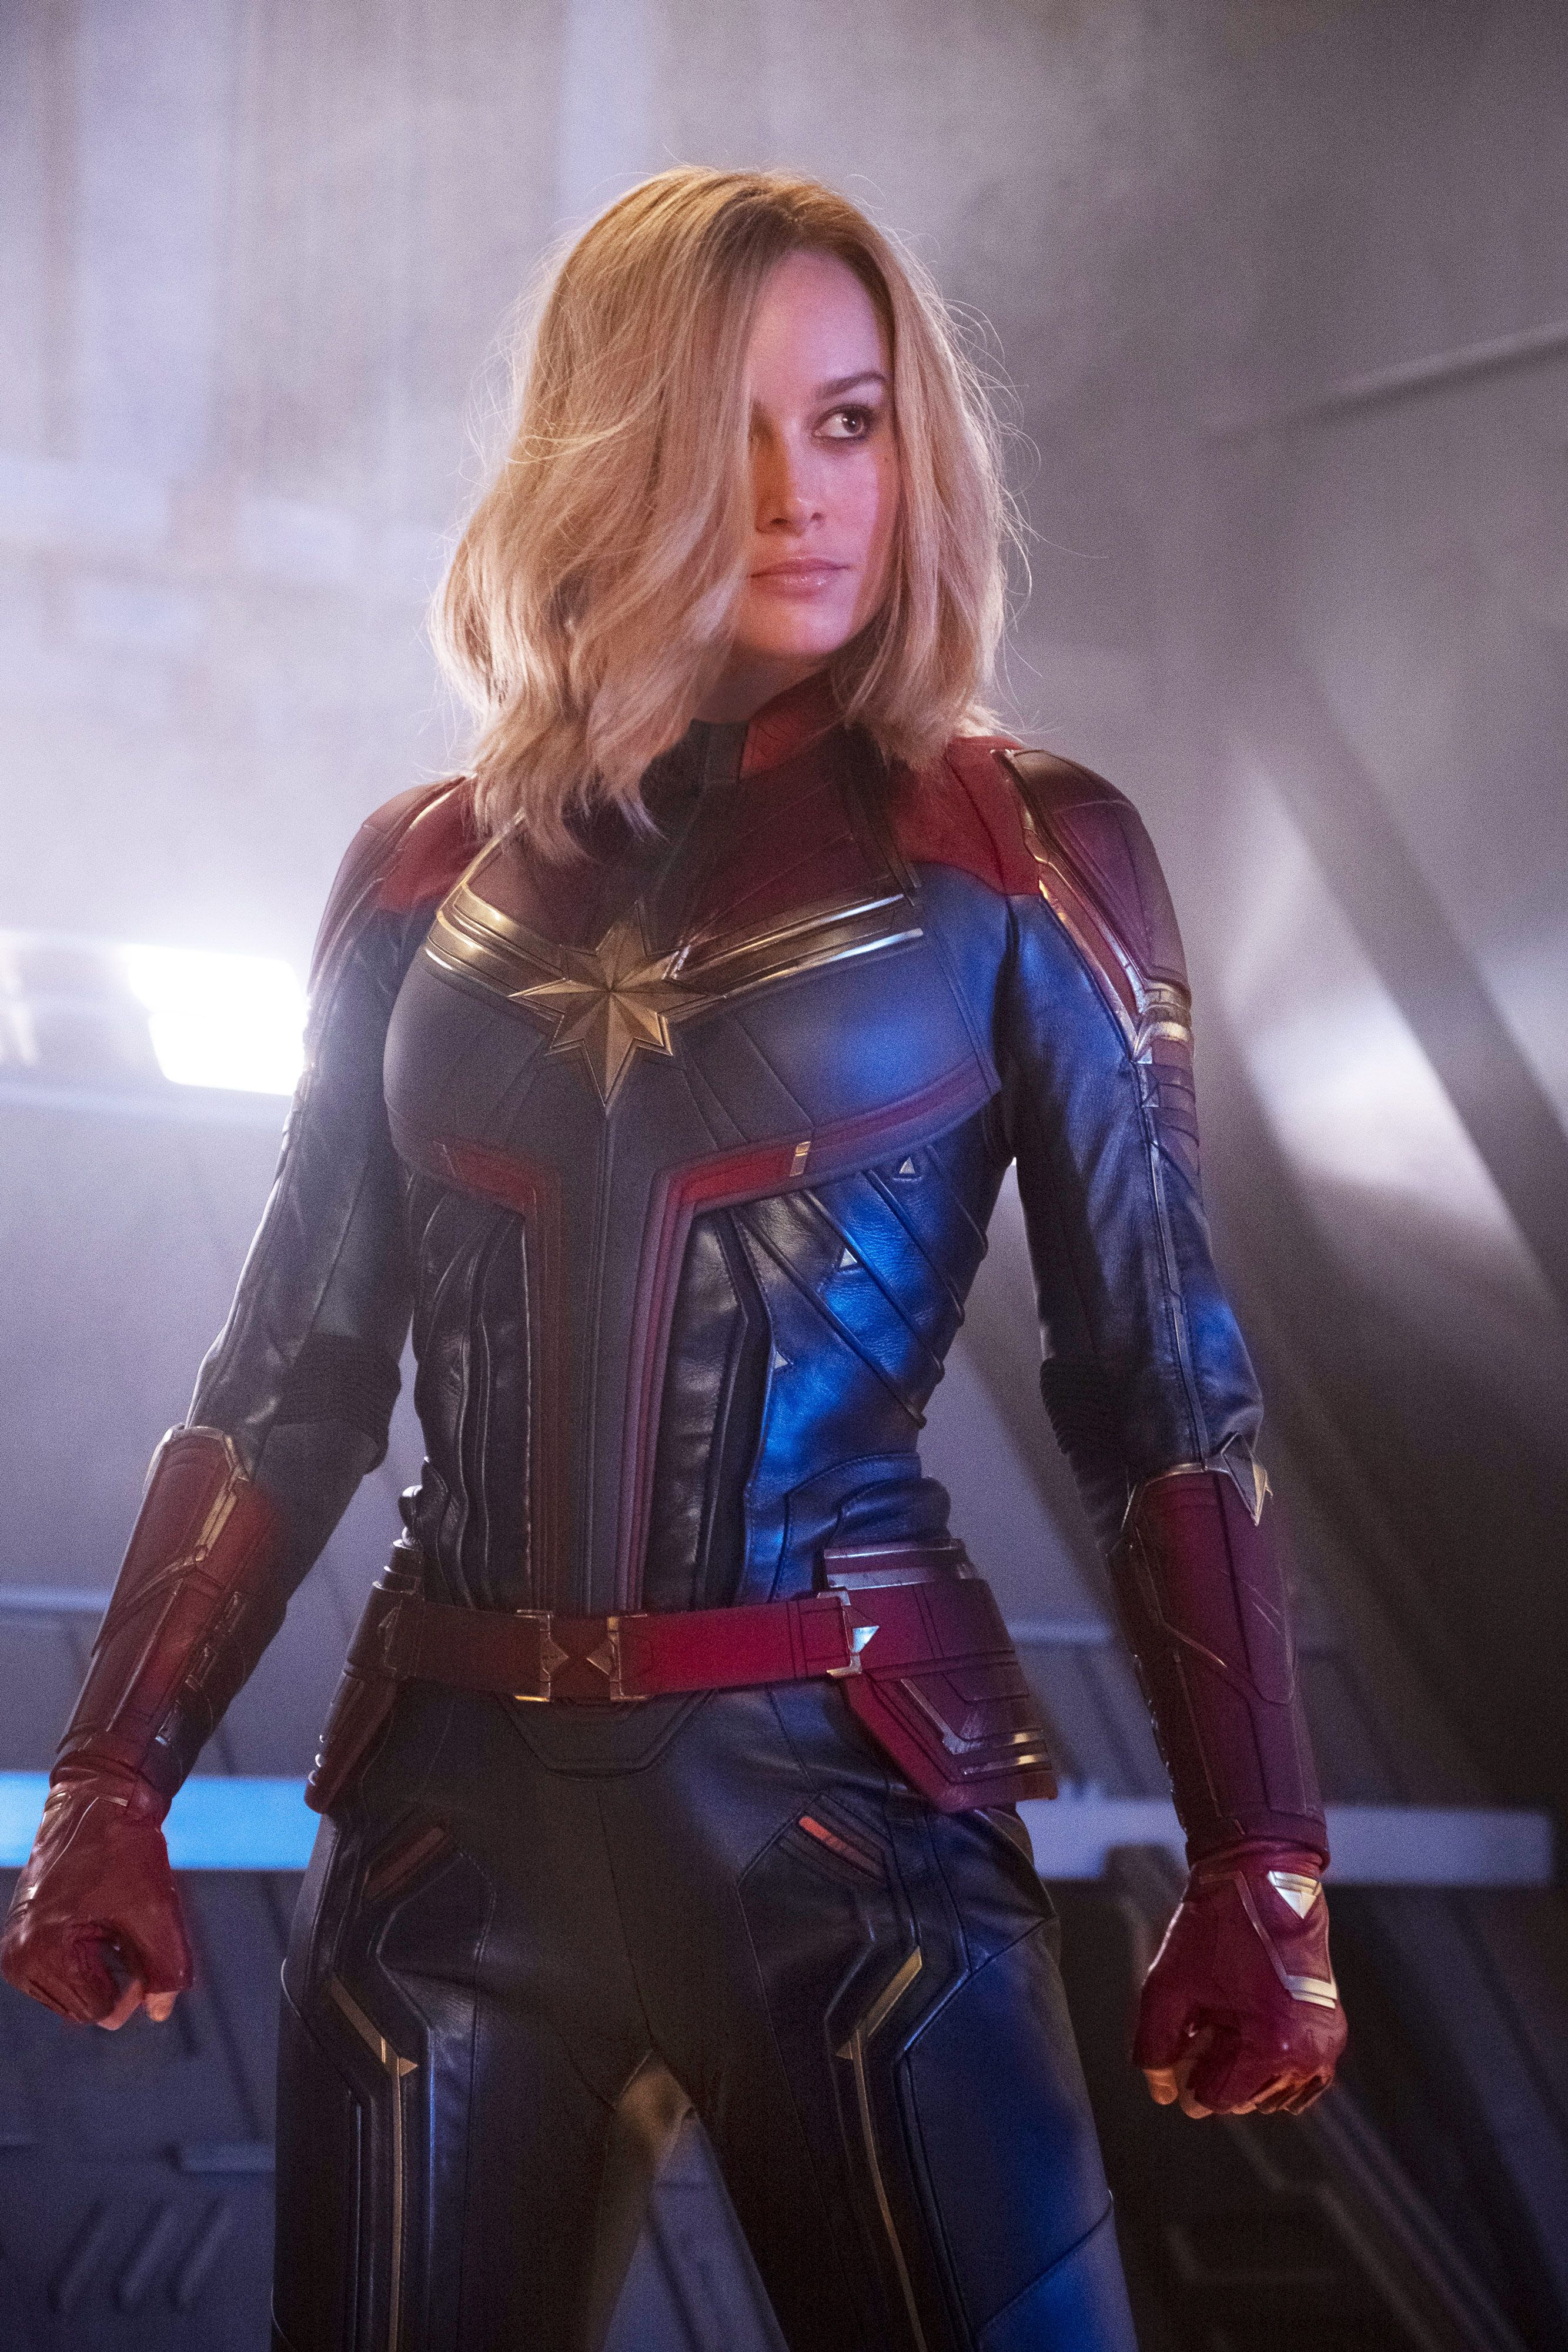 captain marvel highlights the major problem with female superheroes